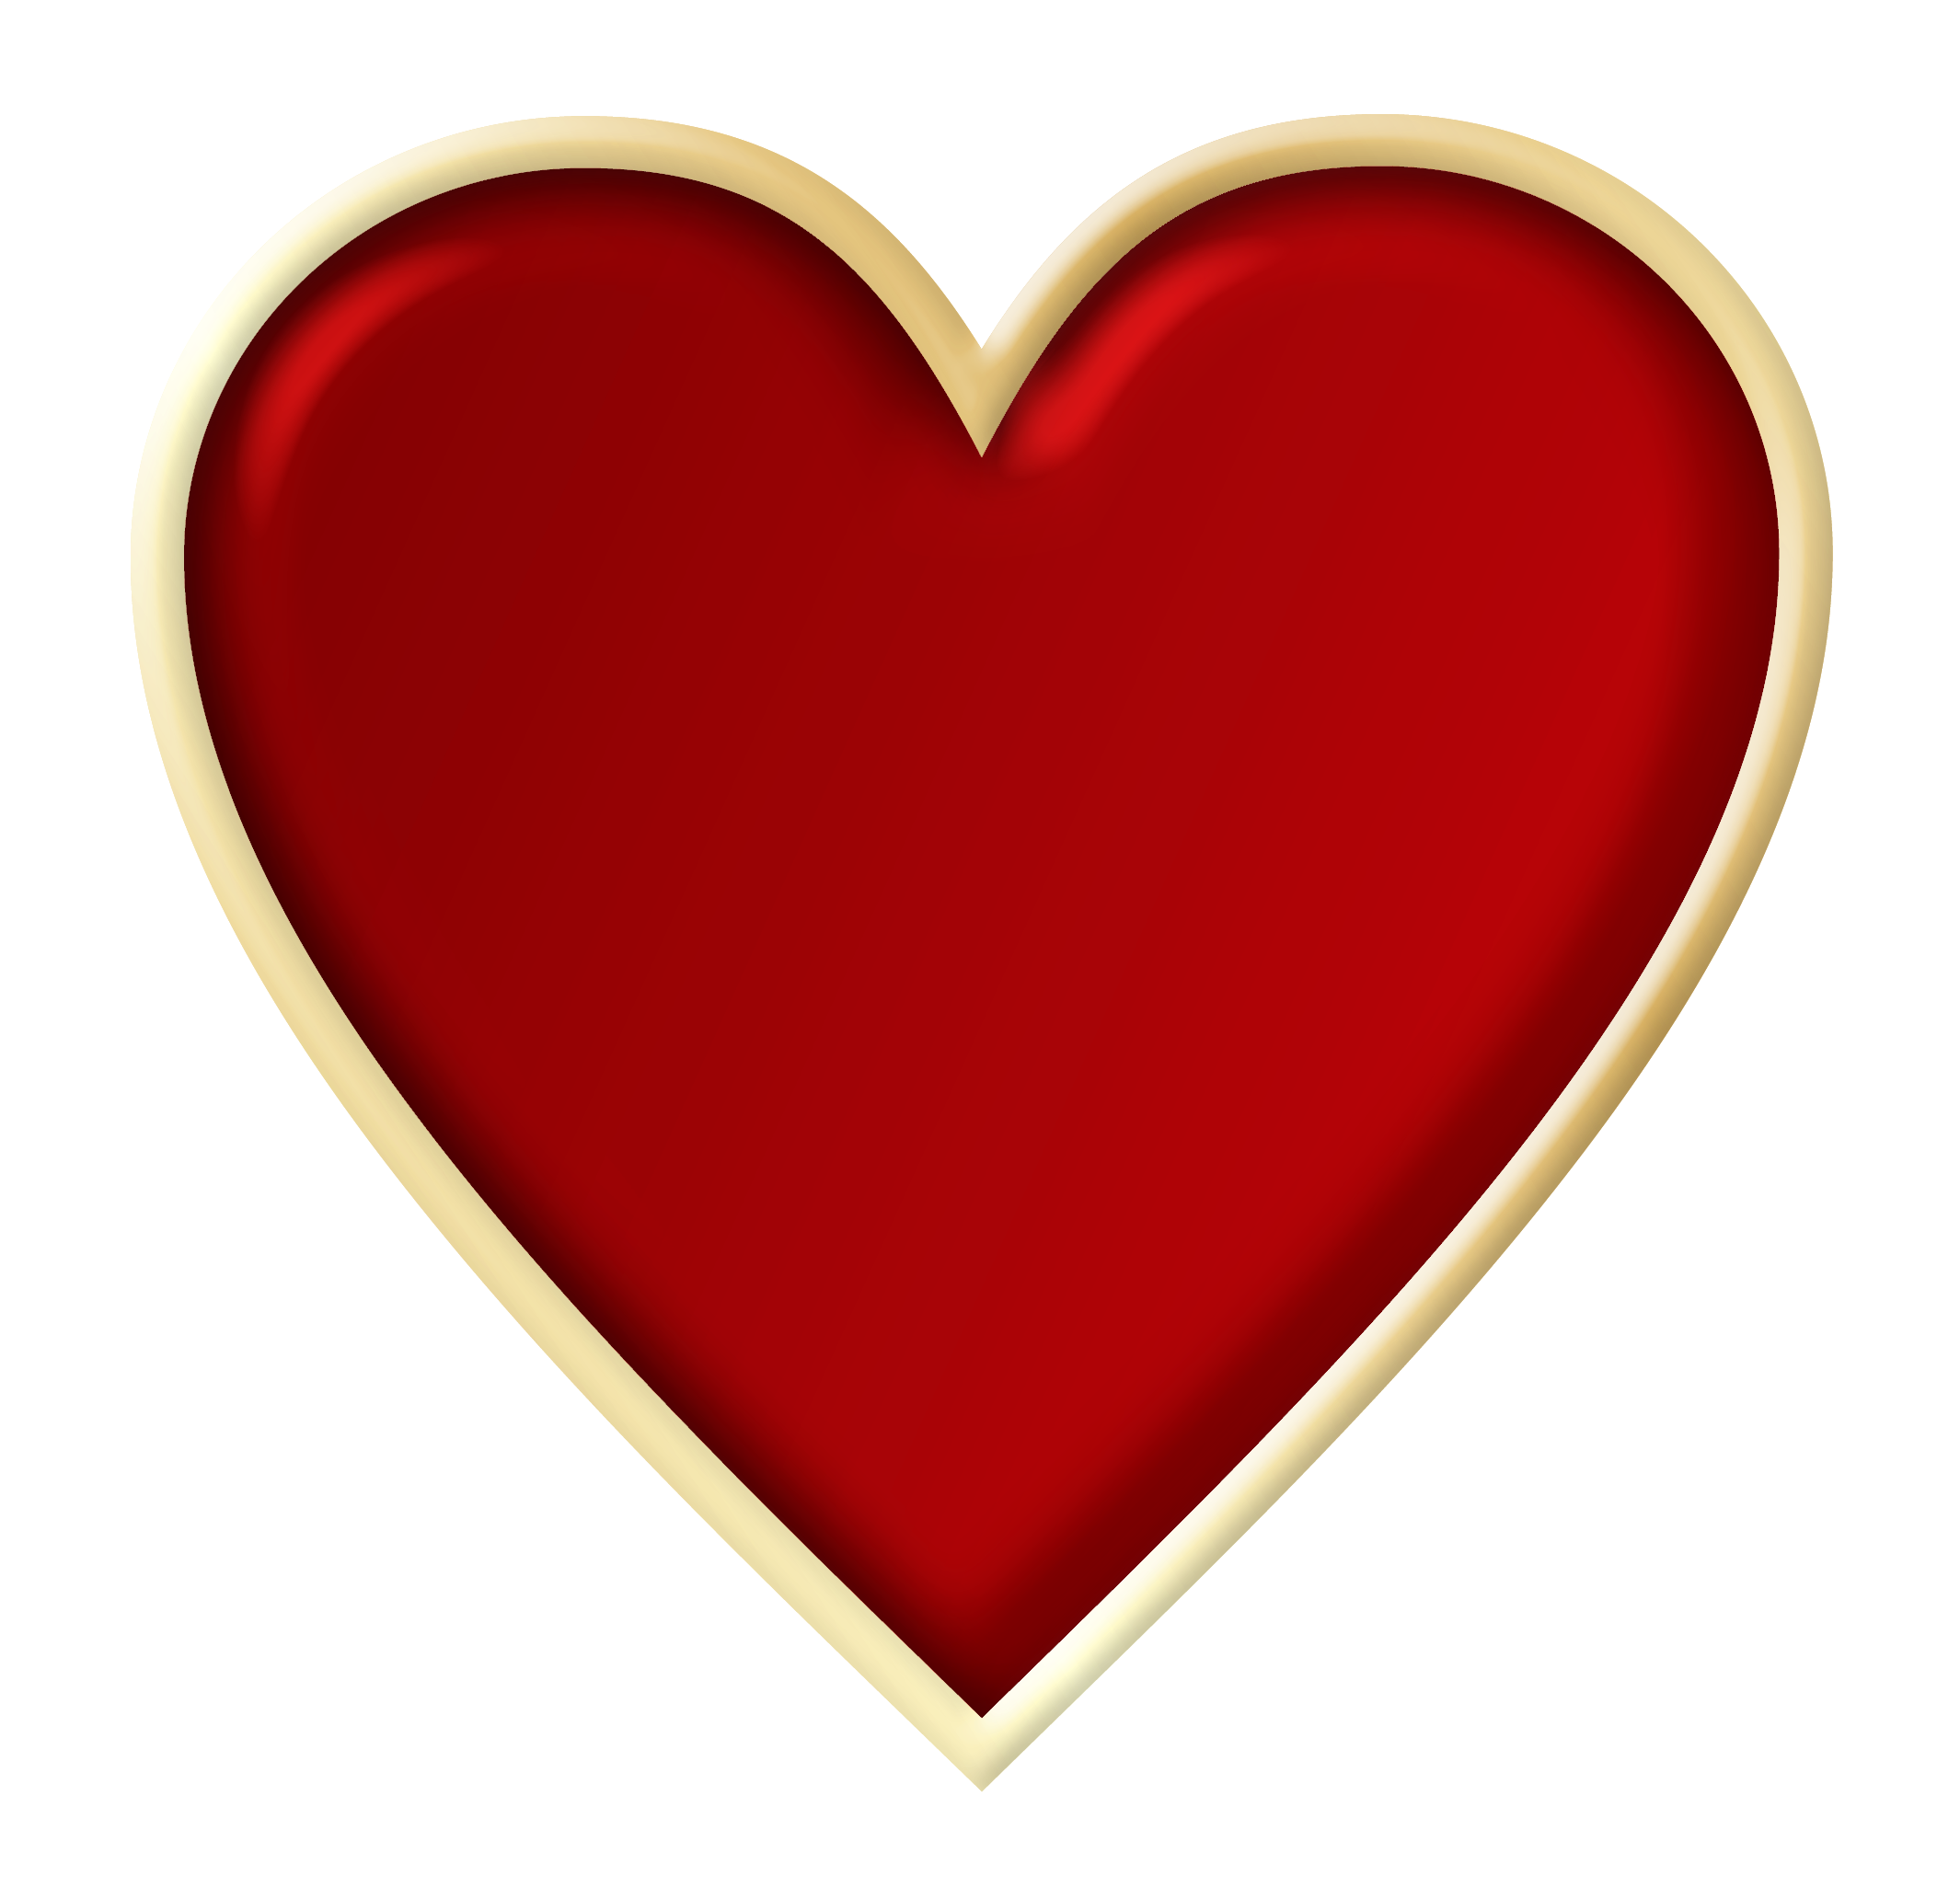 Heartbeat clipart red. Heart png picture gallery